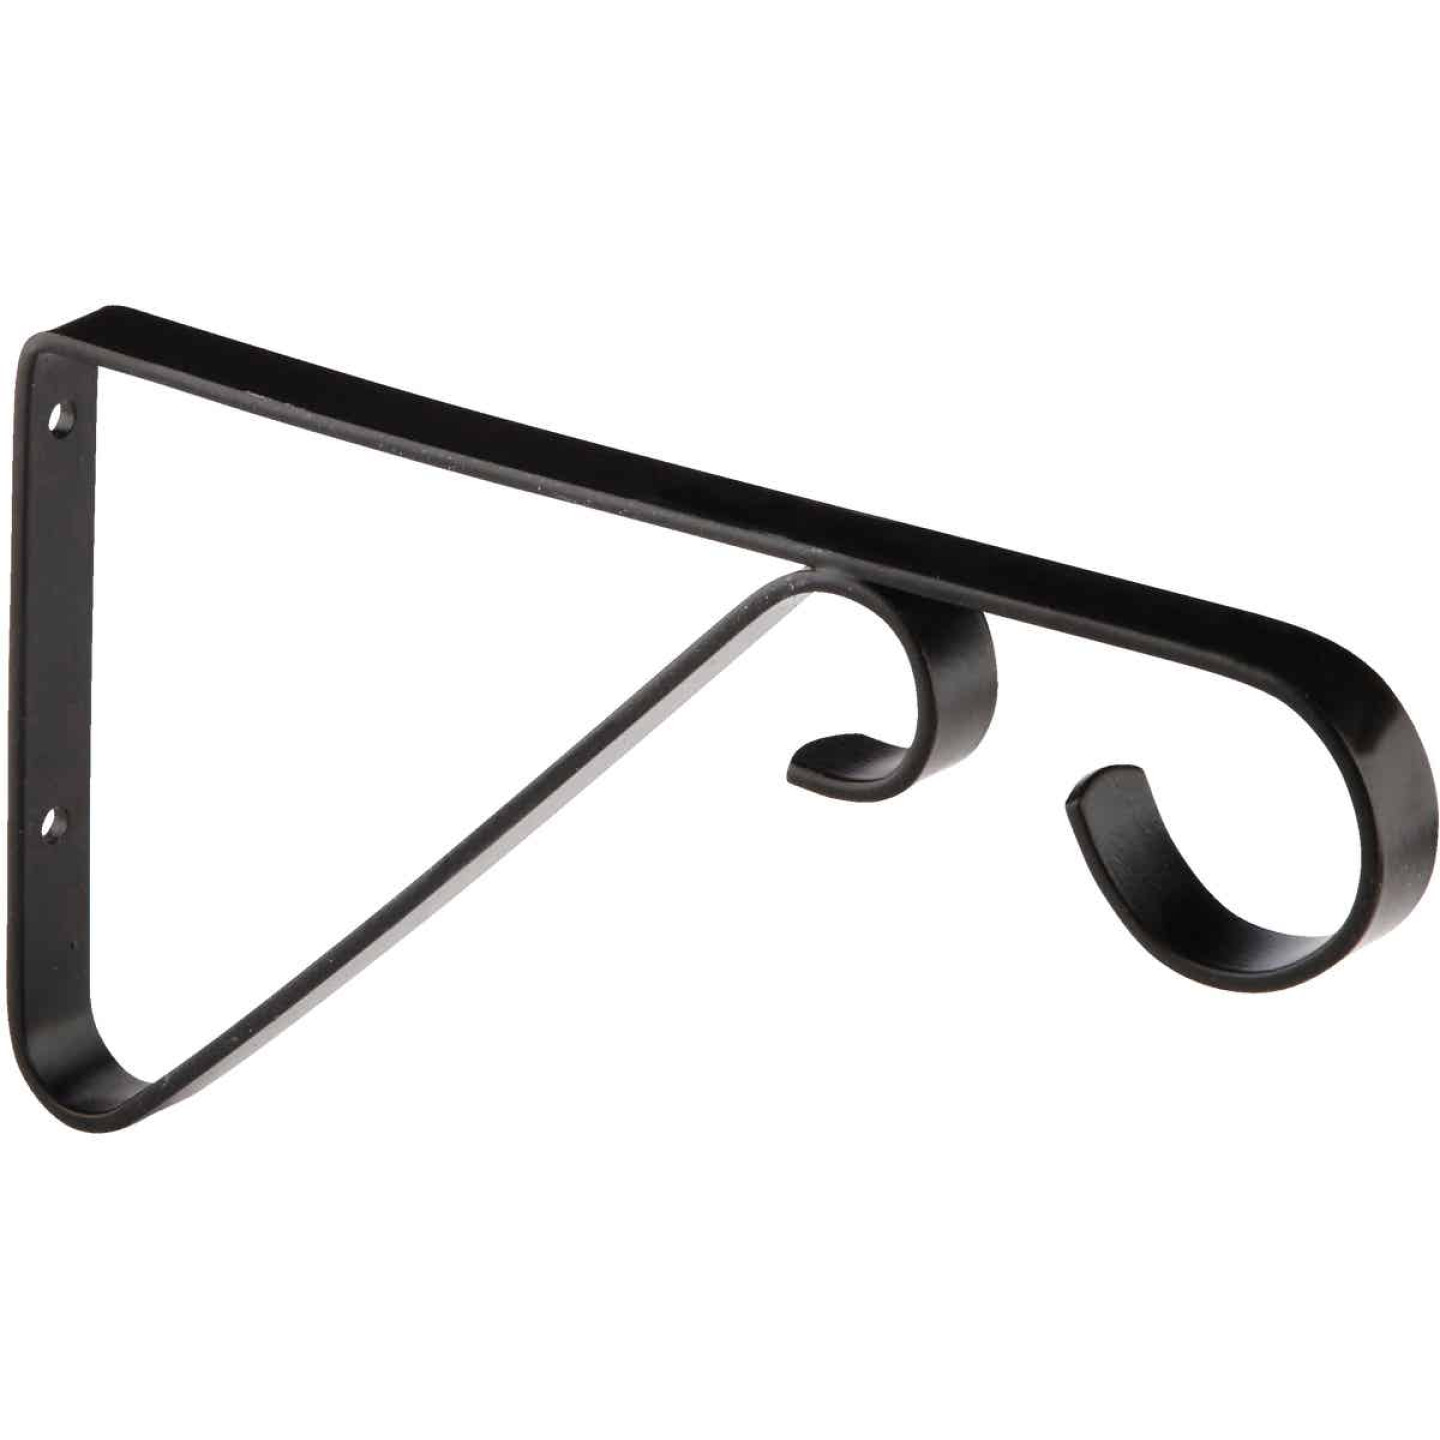 National 6 In. Black Steel Hanging Plant Bracket Image 4